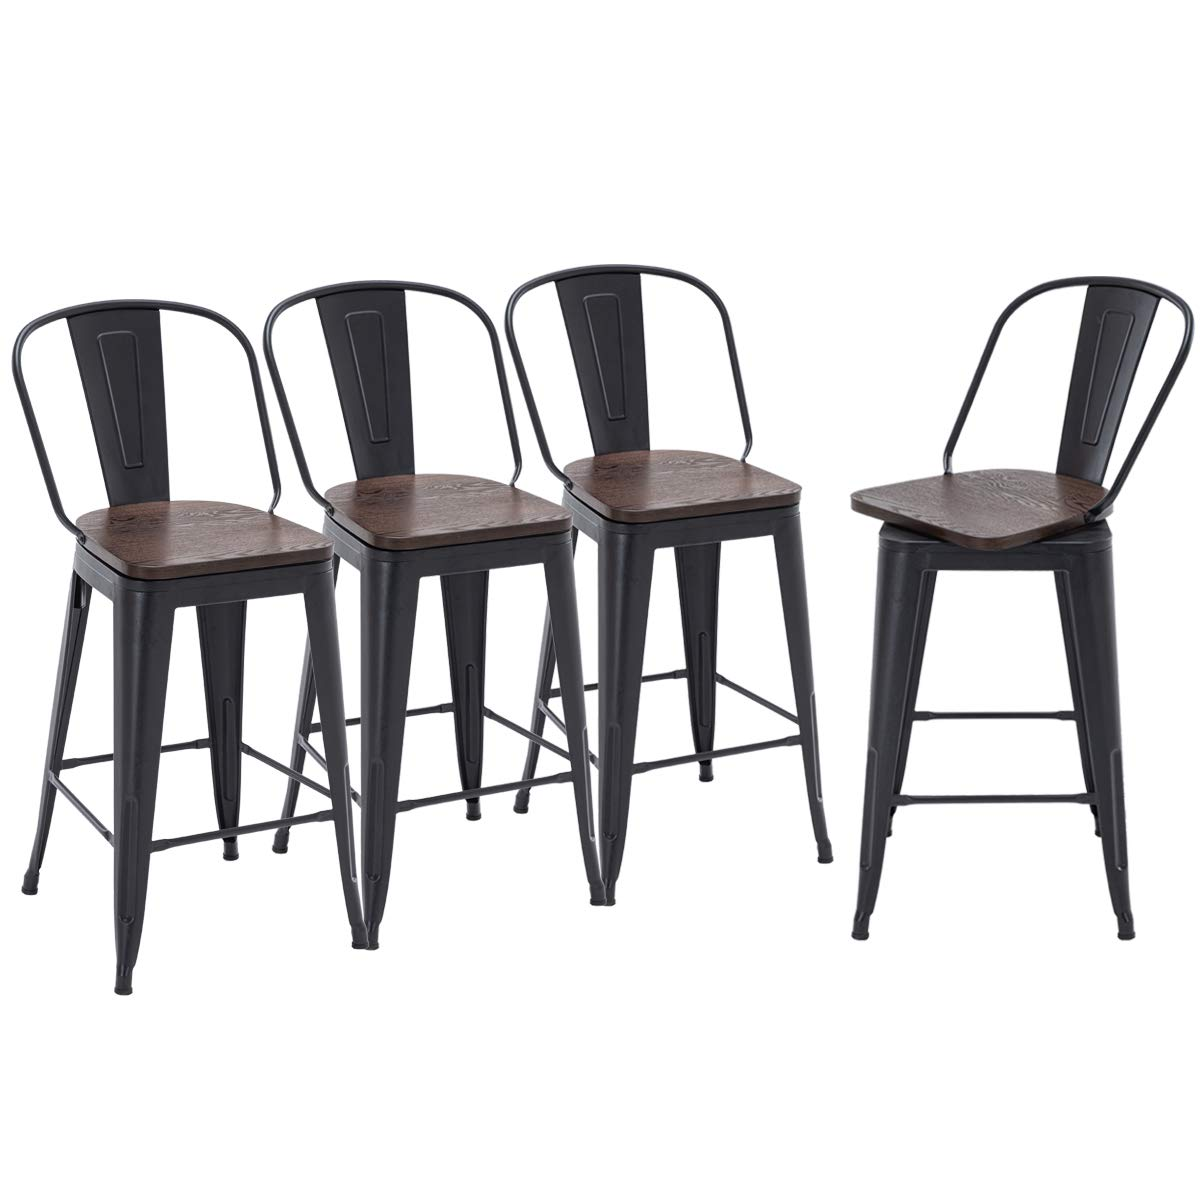 HAOBO Home Swivel Metal Barstools High Back Counter Bar Stools Set of 4 (Matte Black with Wooden Seat, Swivel 26 inch)